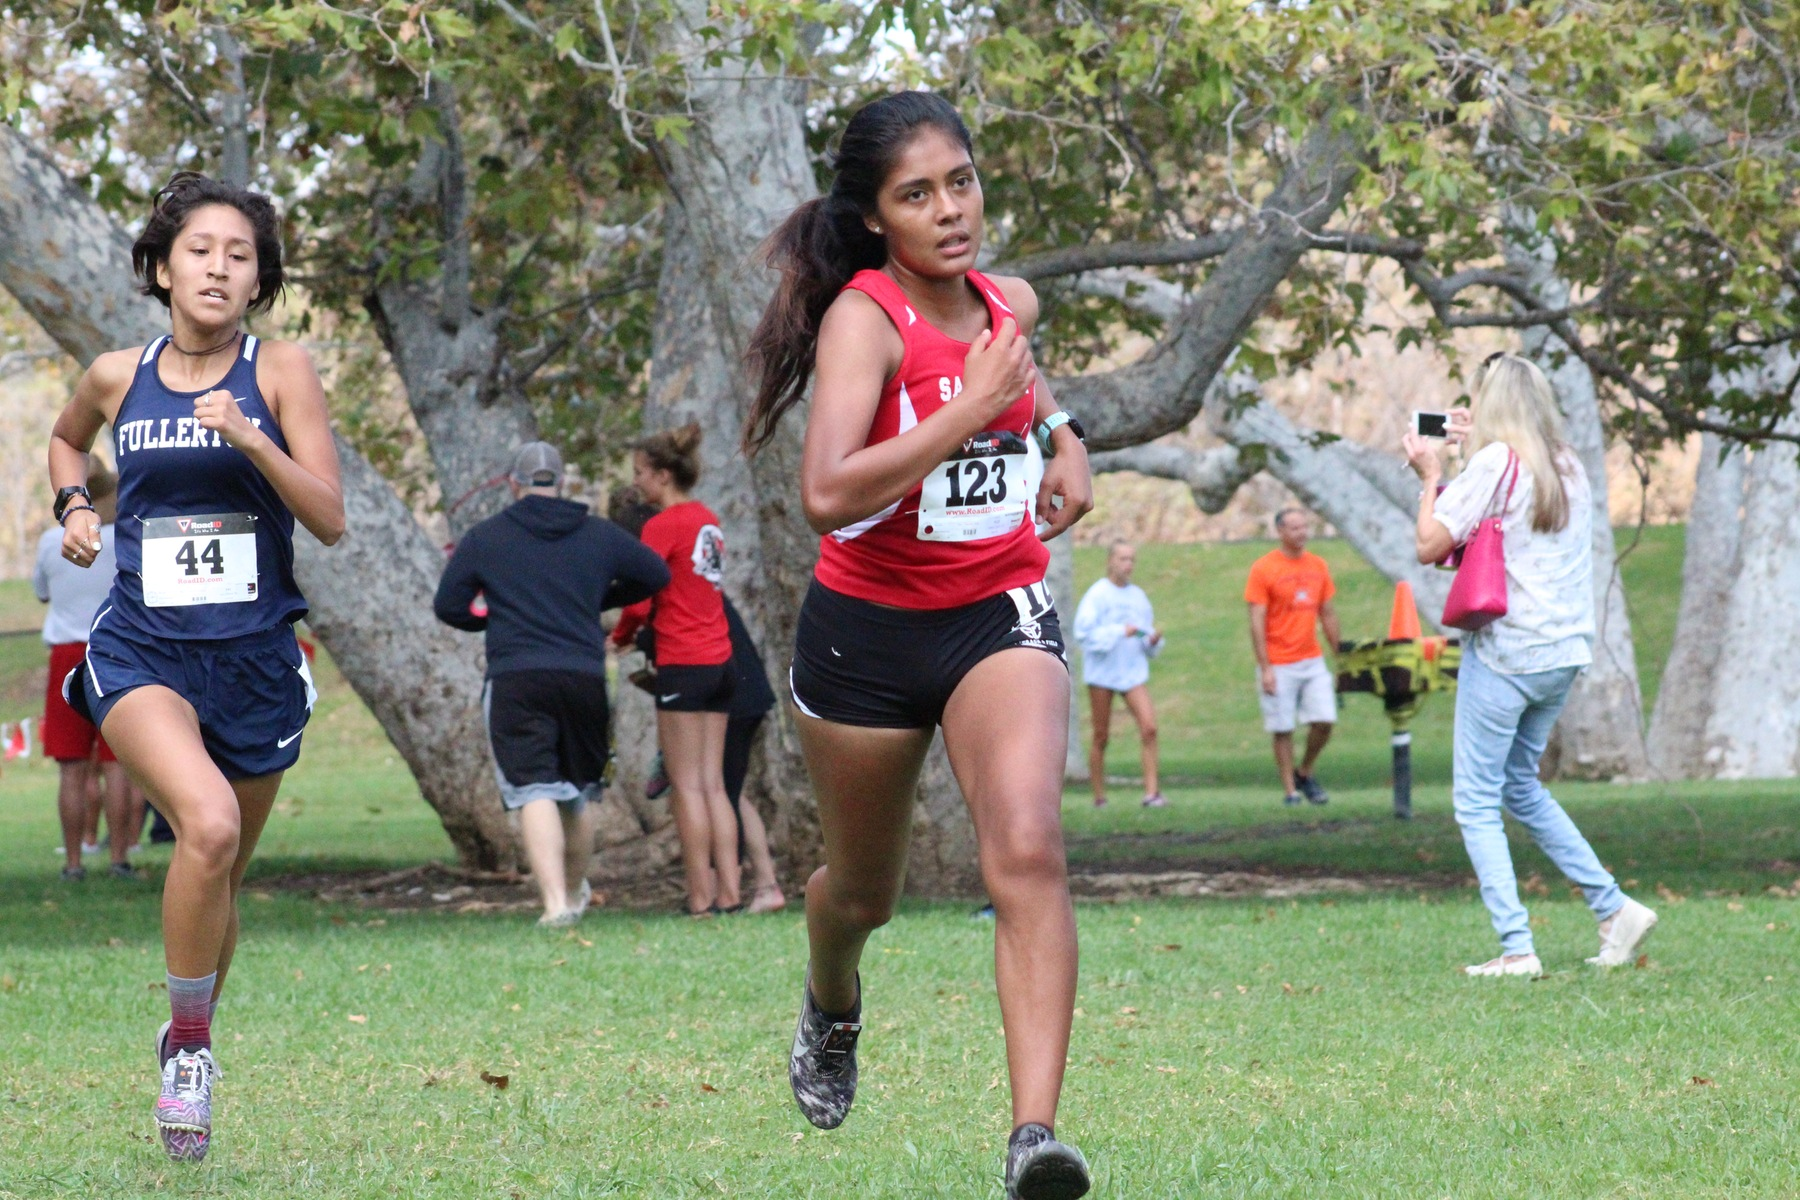 Santa Ana Cross Country Takes on the Field at the UCR Highlander Invitational